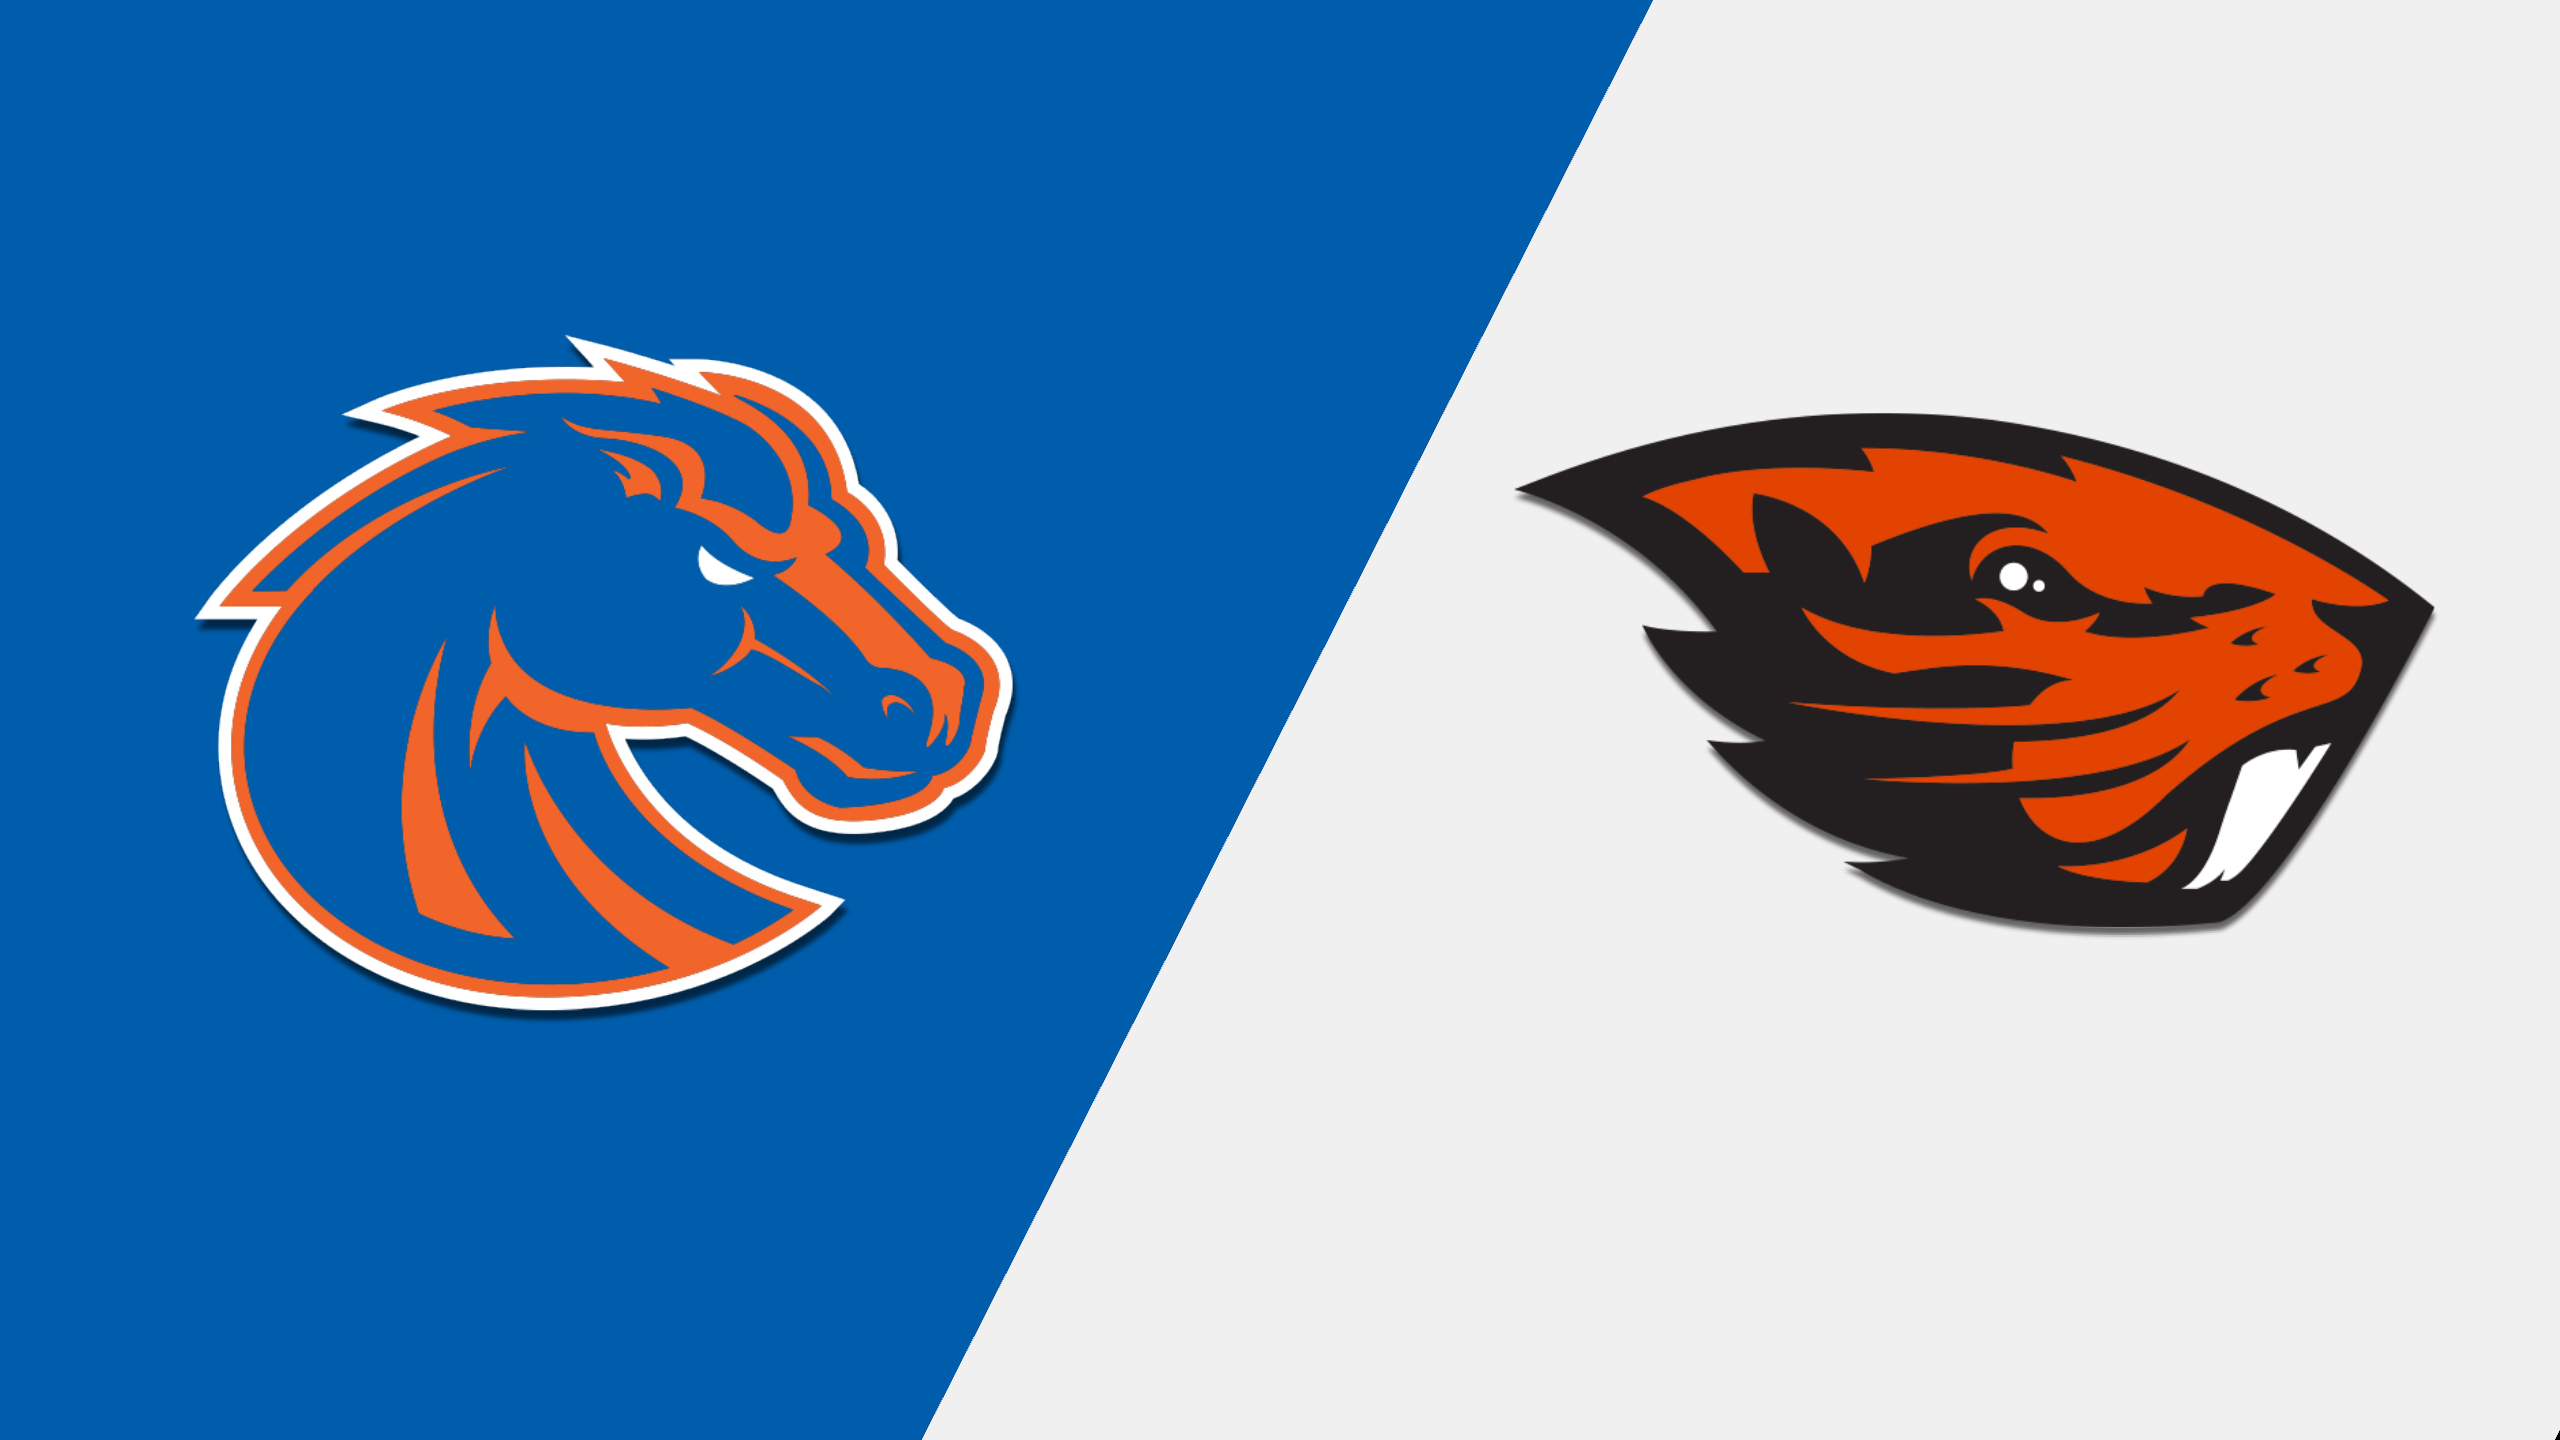 #13 Boise State vs. #4 Oregon State (First Round) (NCAA Women's Basketball Championship)